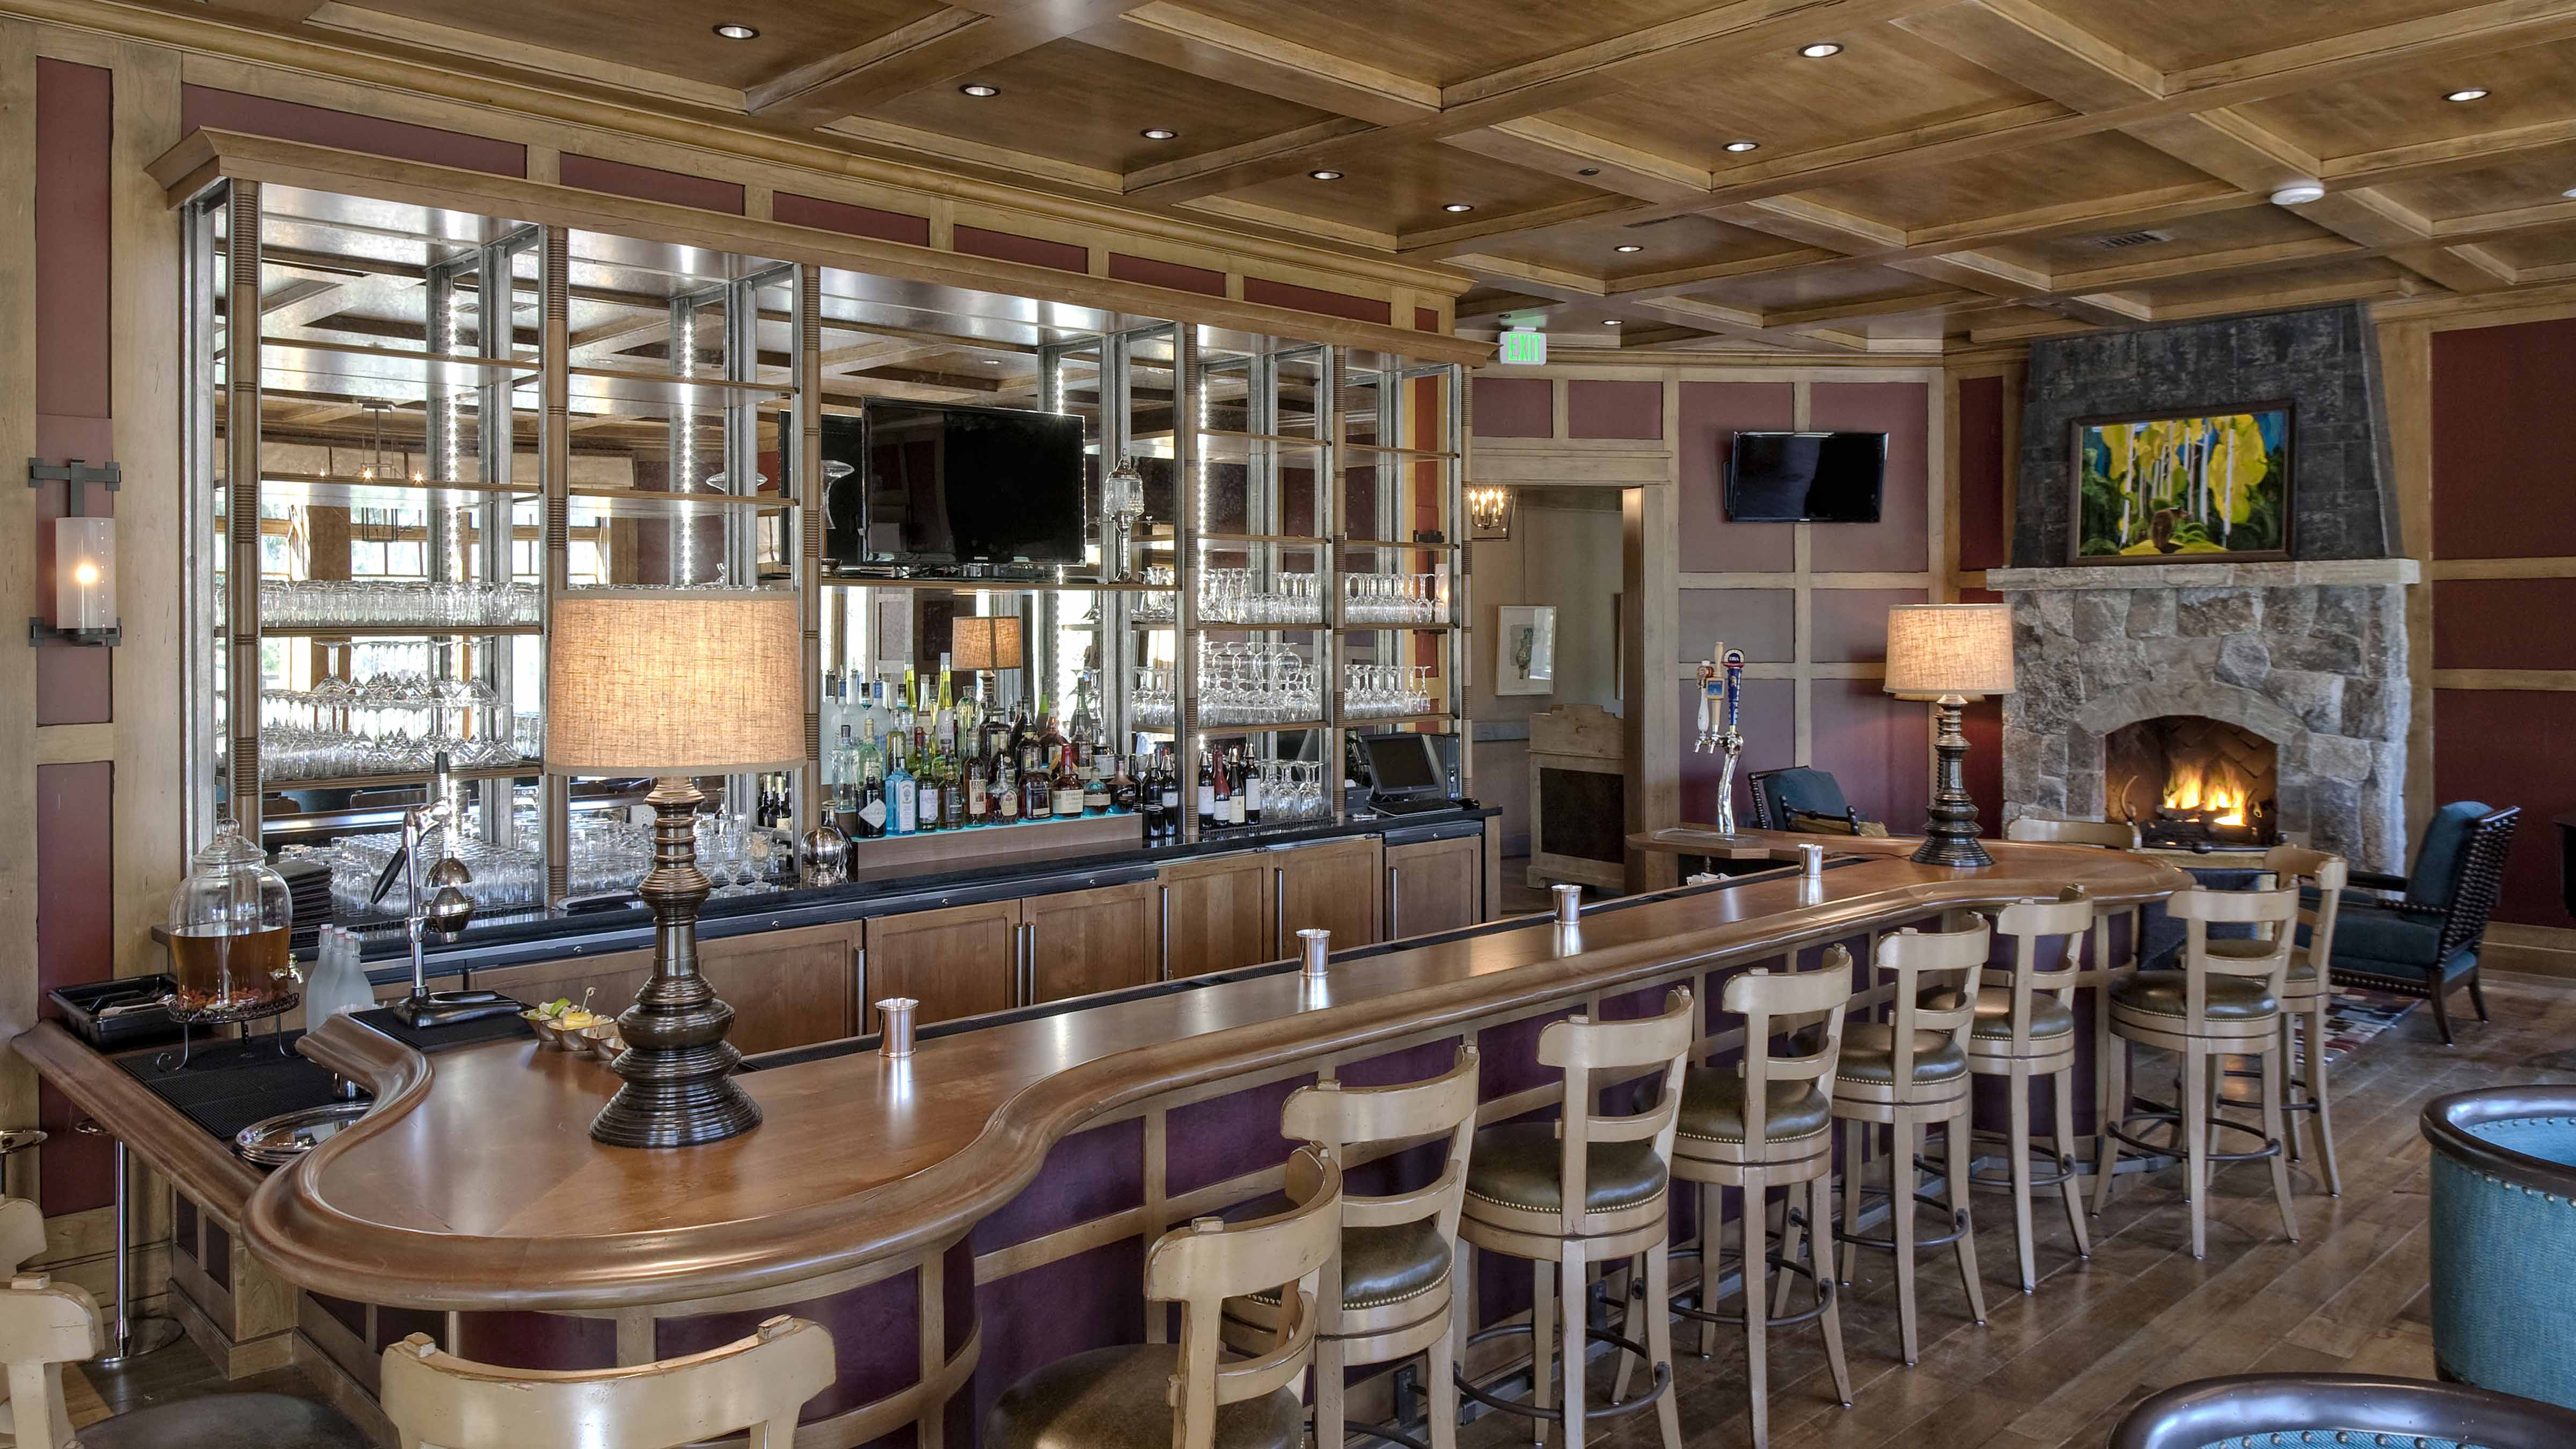 Martis Camp Lodge Golf Clubhouseinteriors Of Bar And Casual Dining